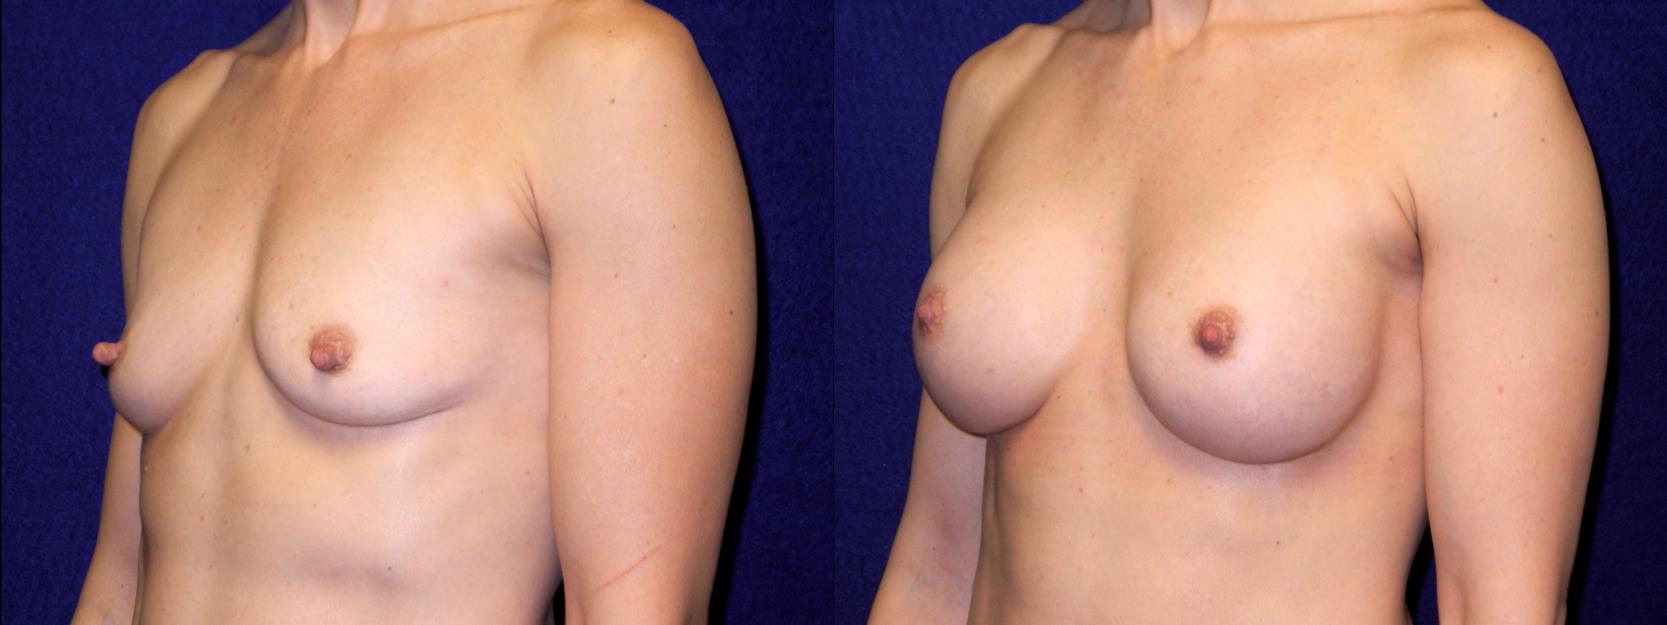 Left 3/4 View - Breast Augmentation